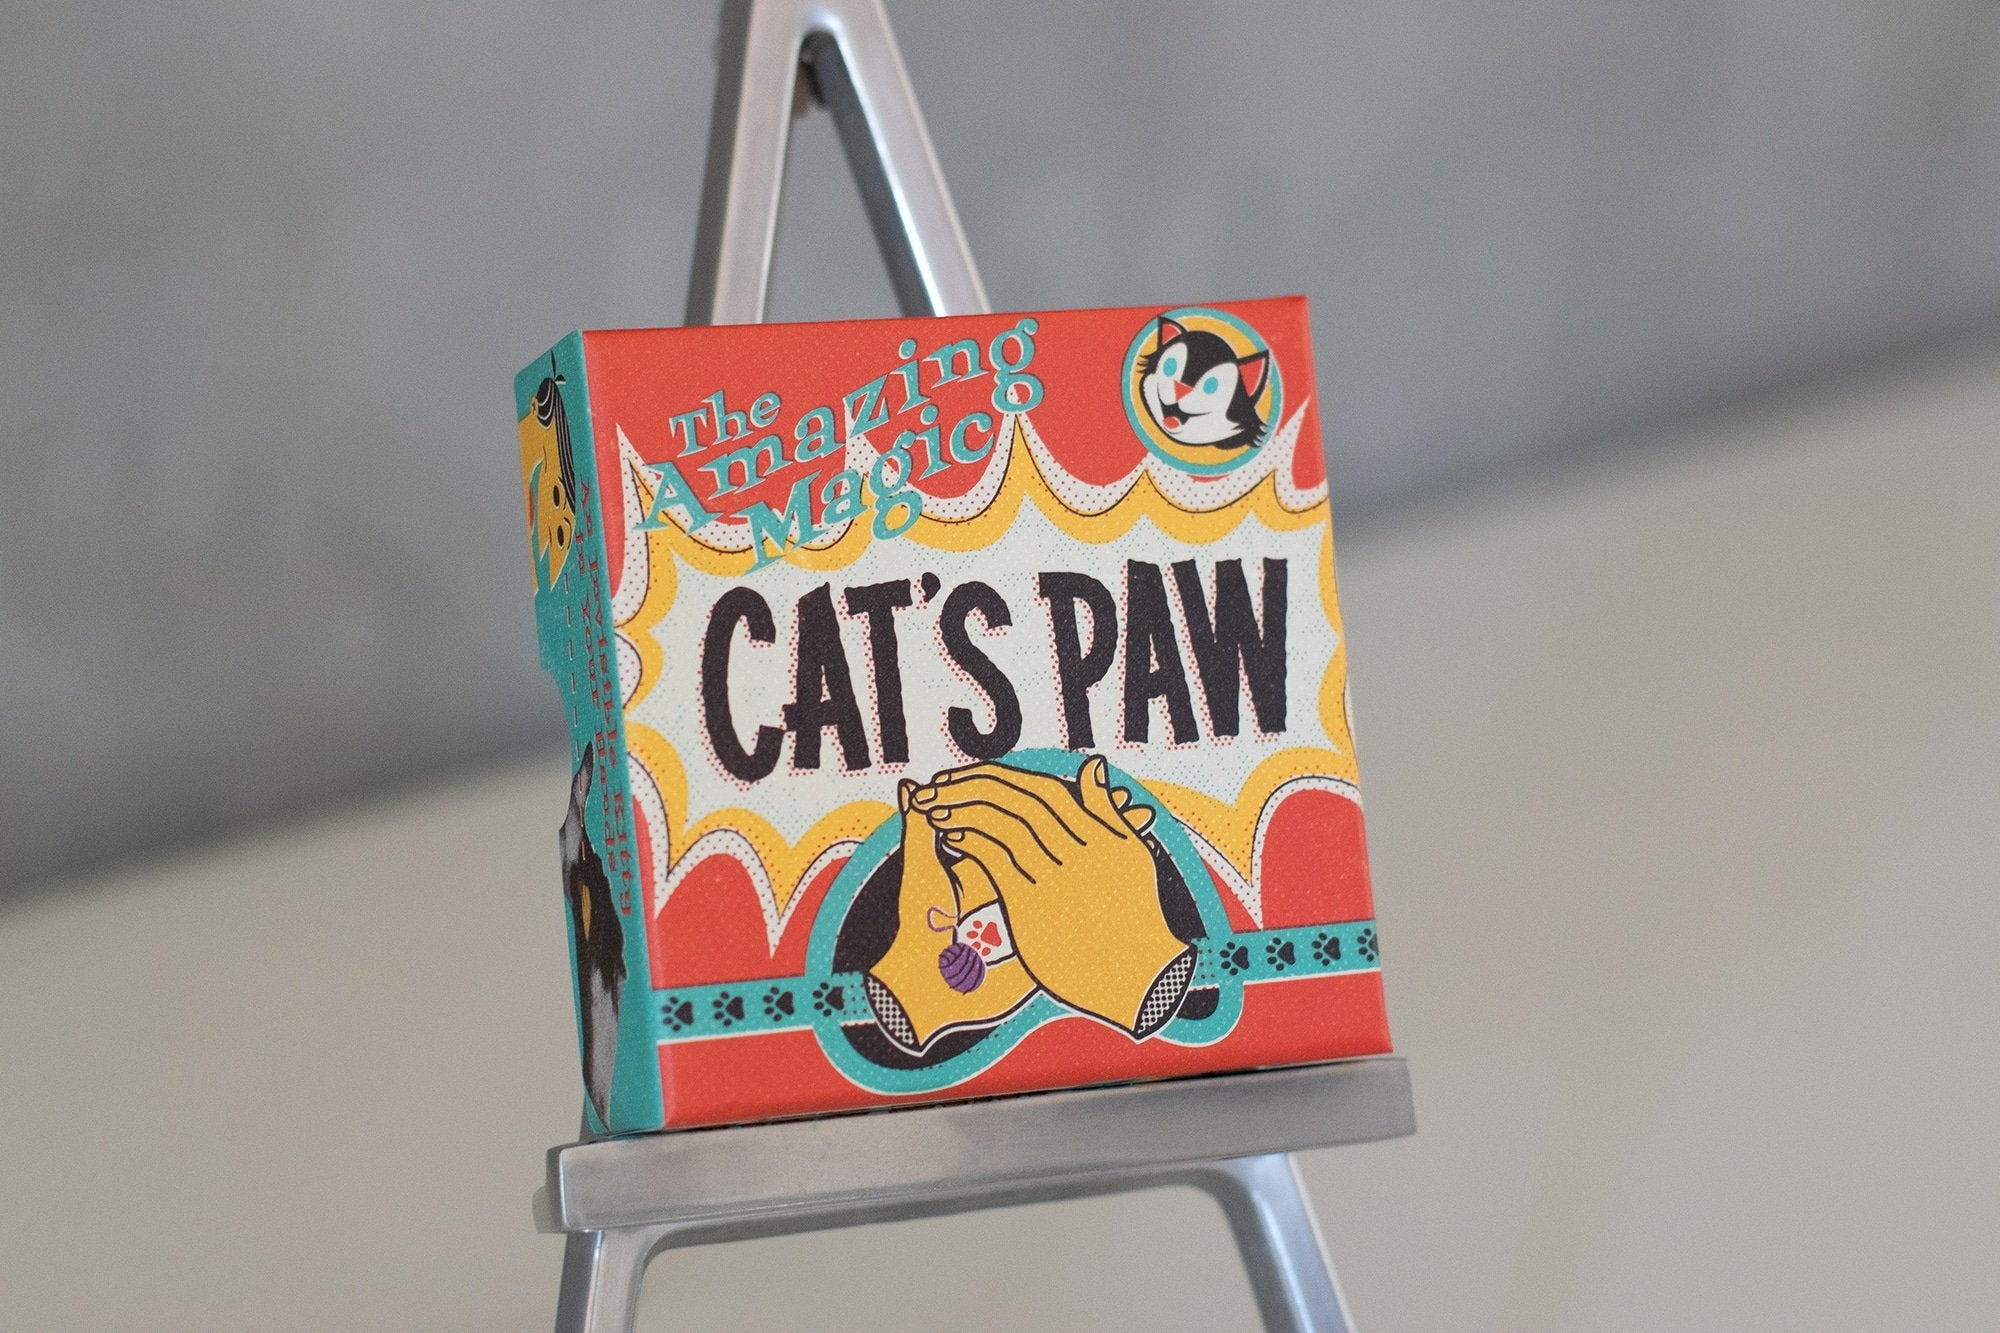 Cats Paw Galerie